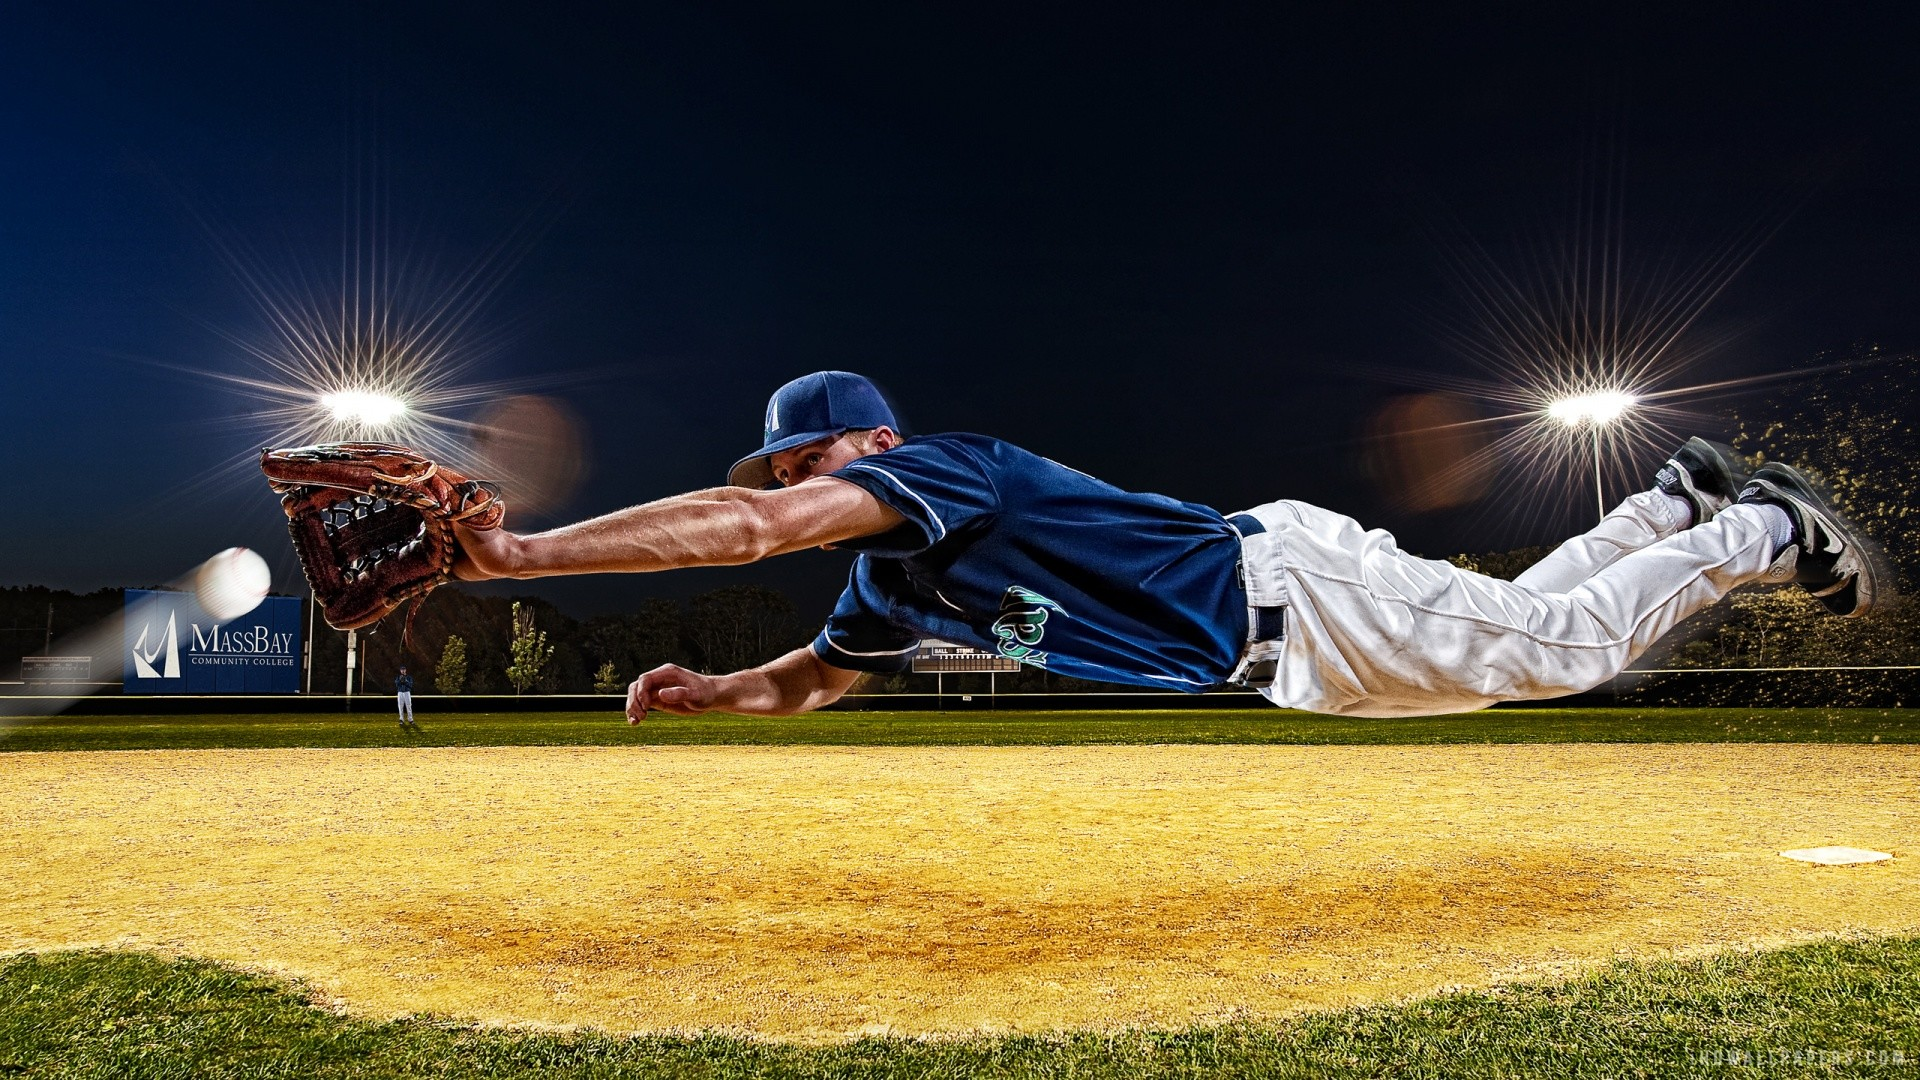 Cool Backgrounds Sports Baseball: Cool Baseball Backgrounds (60+ Pictures